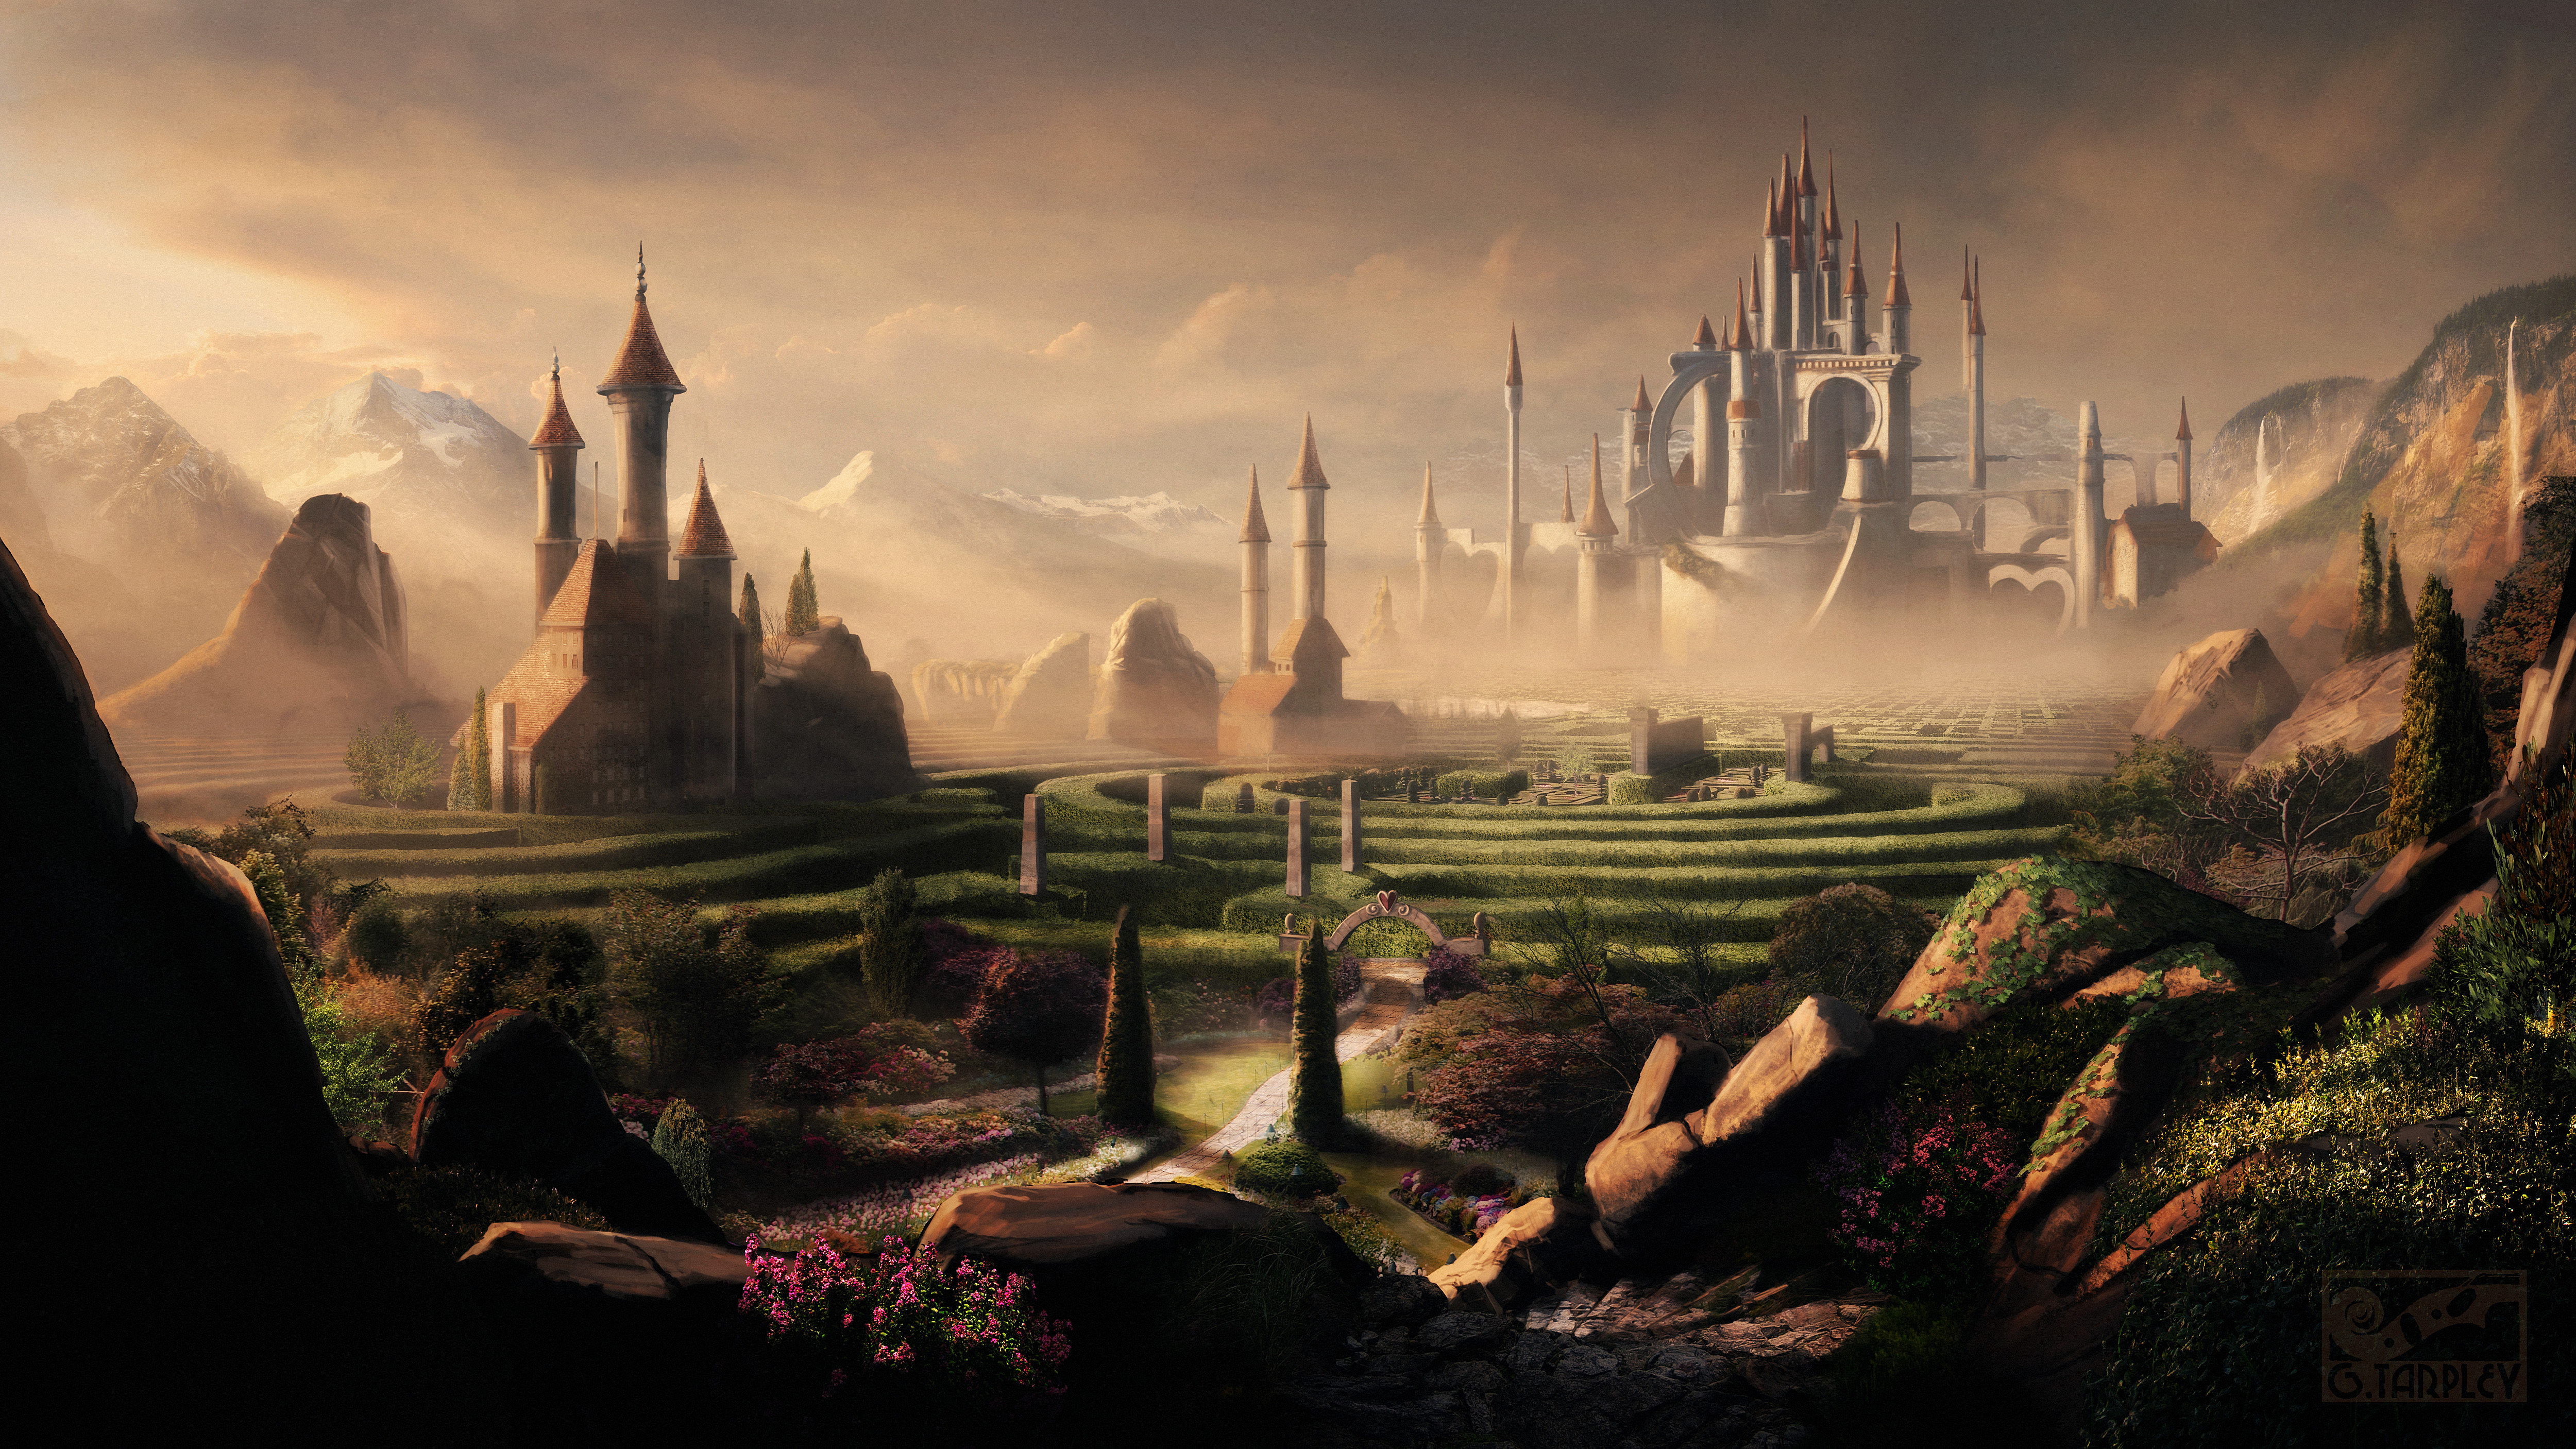 Cgchannel april 2010 matte painting flickr photo sharing for Matte painting